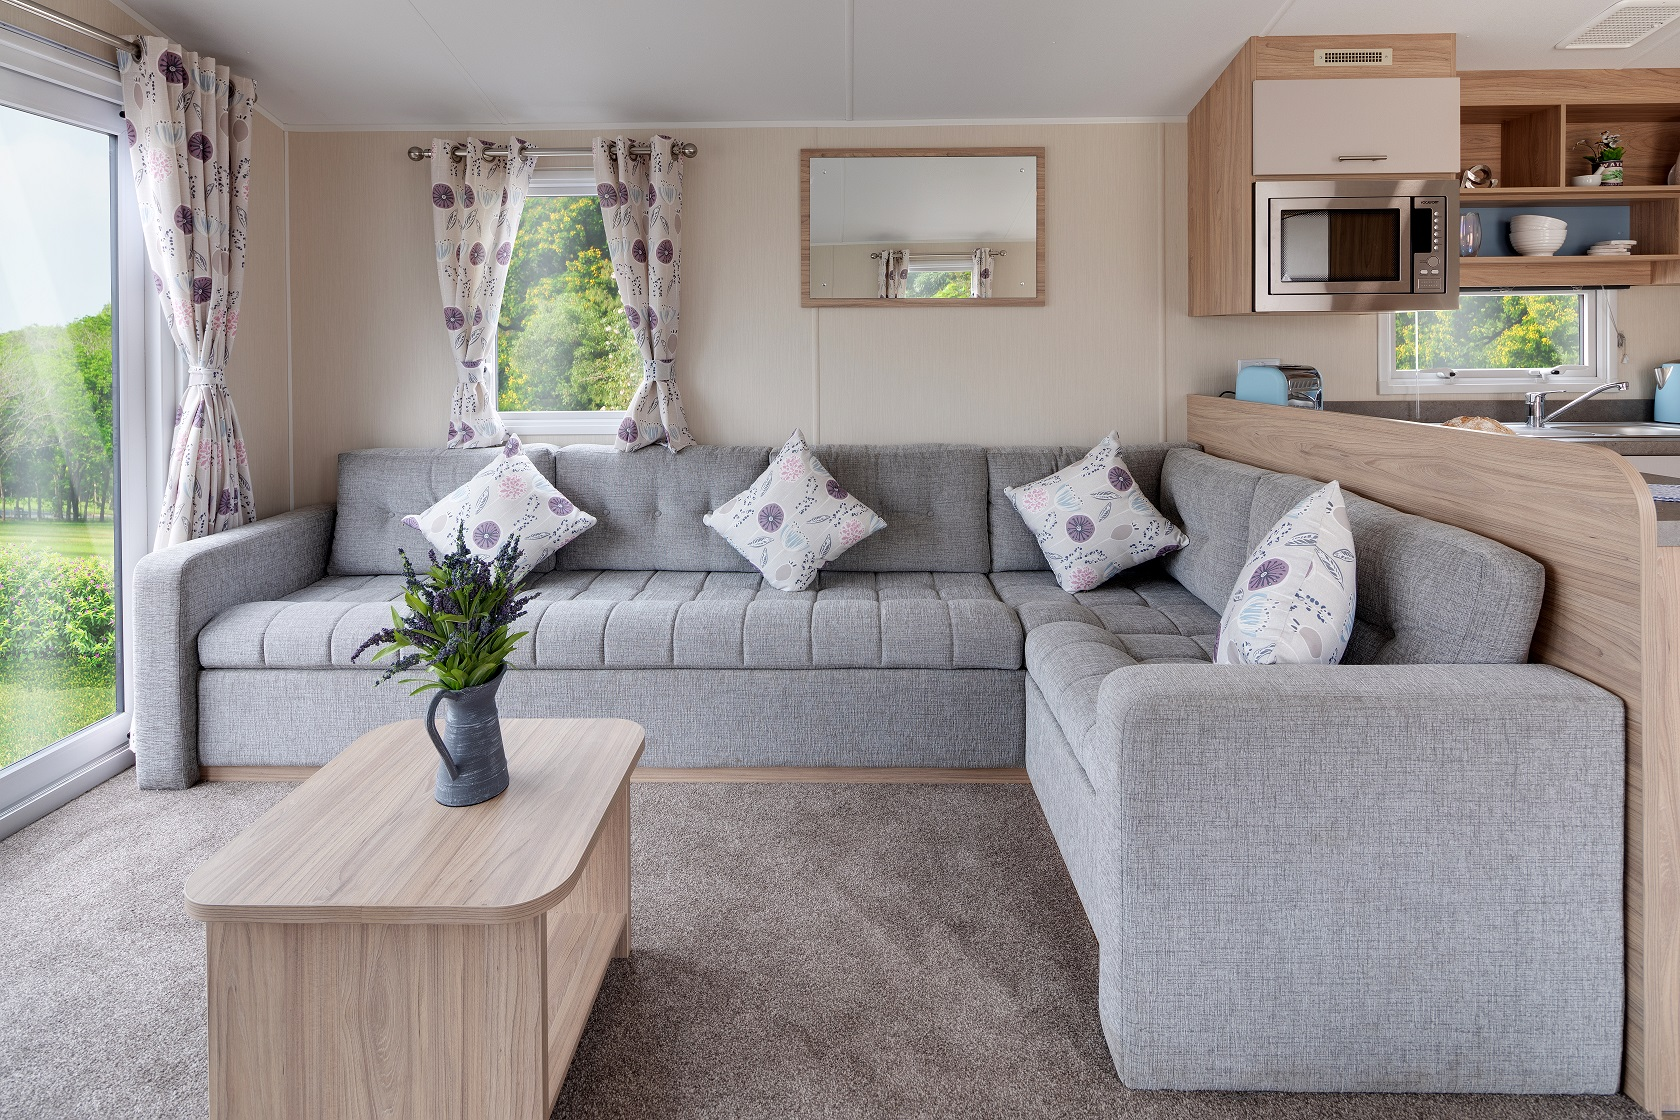 Willerby Linwood: New Static Caravans and Holiday Homes for Sale, Adderstone, Belford Large Image 1